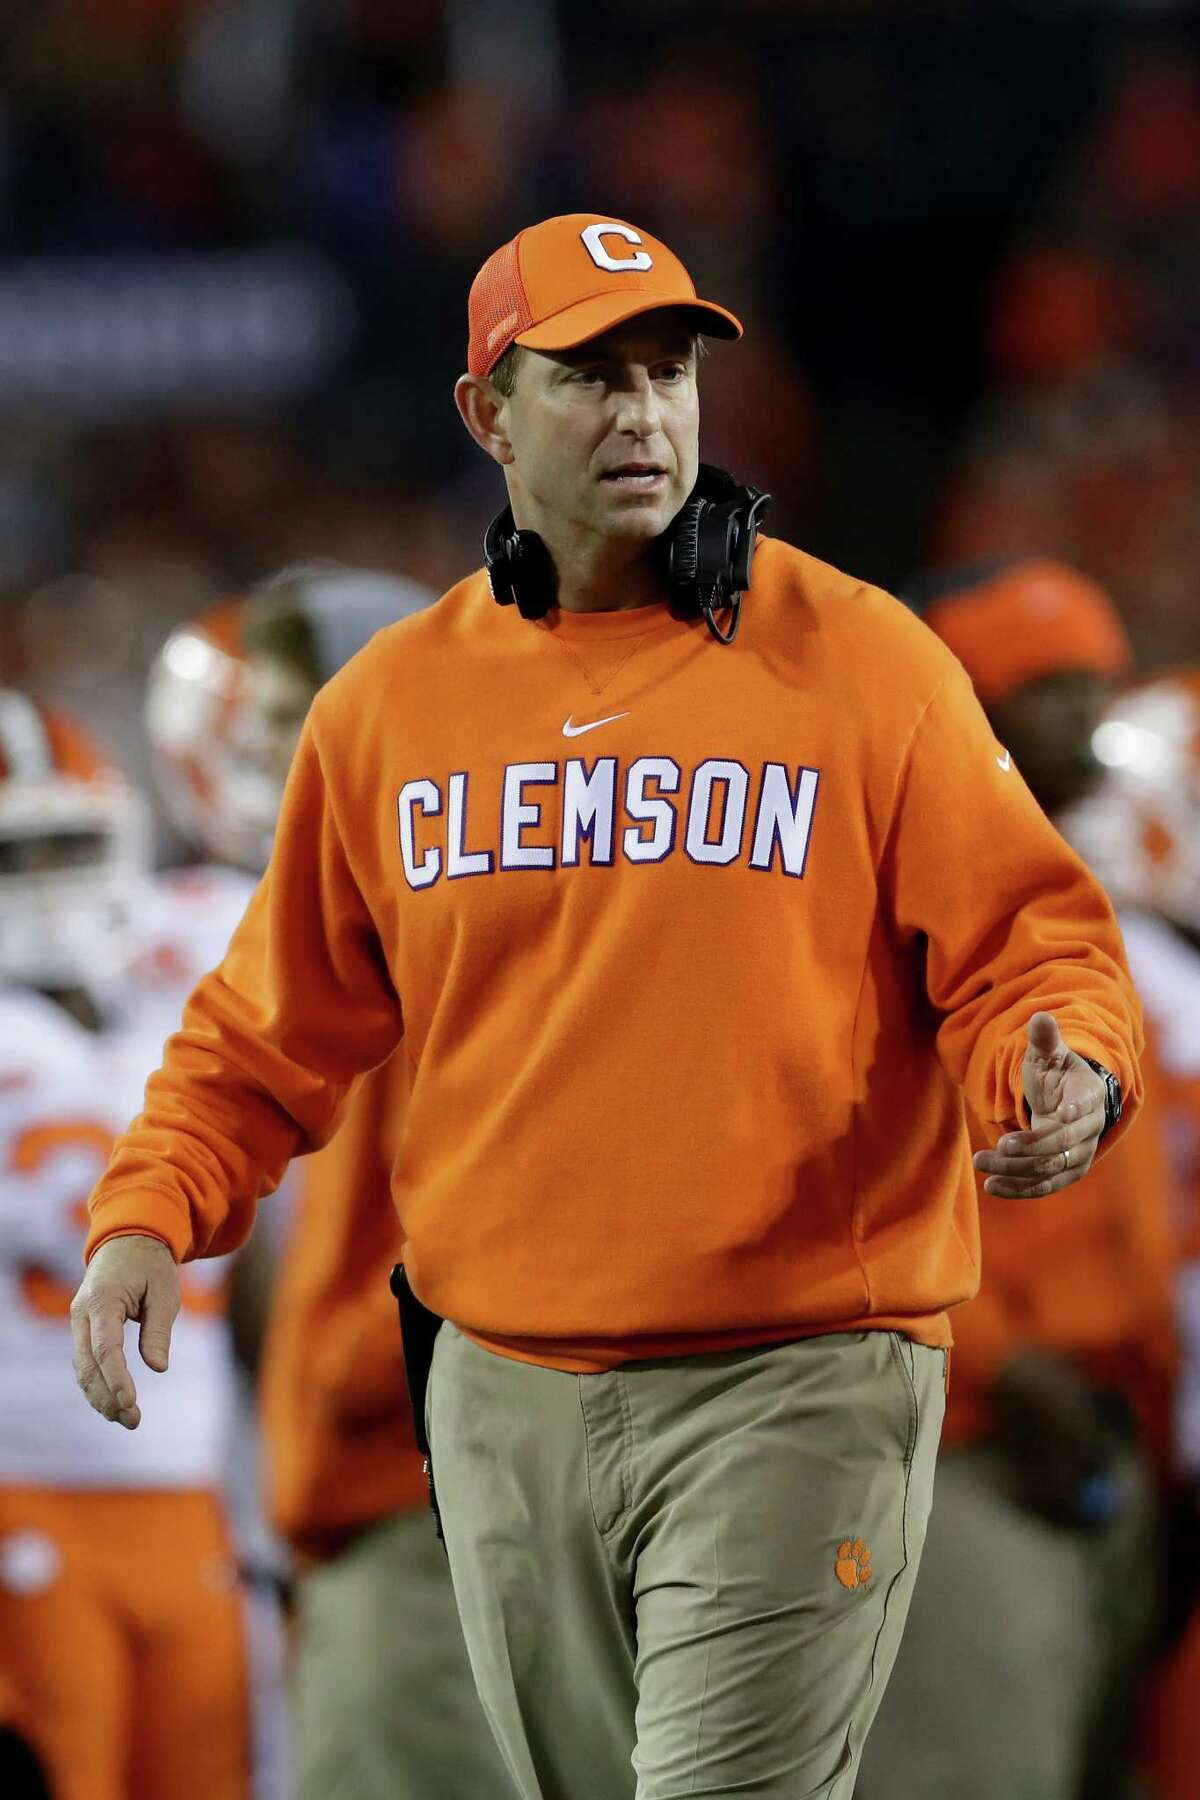 TAMPA, FL - JANUARY 09: Head coach Dabo Swinney of the Clemson Tigers reacts during the second half of the 2017 College Football Playoff National Championship Game against the Alabama Crimson Tide at Raymond James Stadium on January 9, 2017 in Tampa, Florida. (Photo by Ronald Martinez/Getty Images) ORG XMIT: 686857421